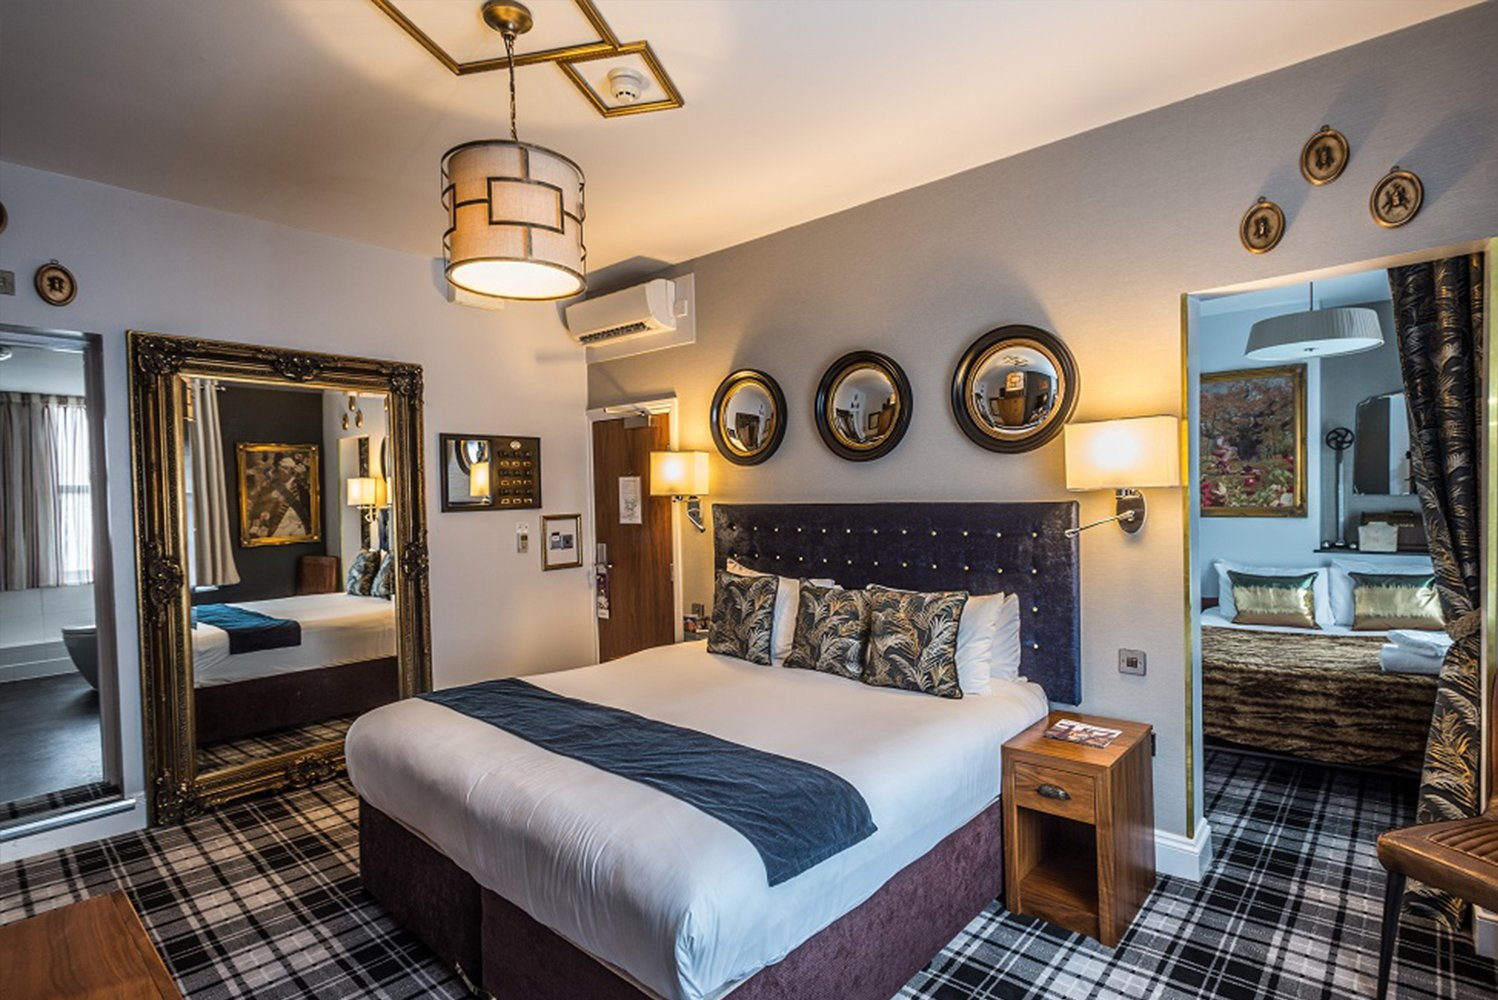 The design of the new rooms pays homage to traditional English style.